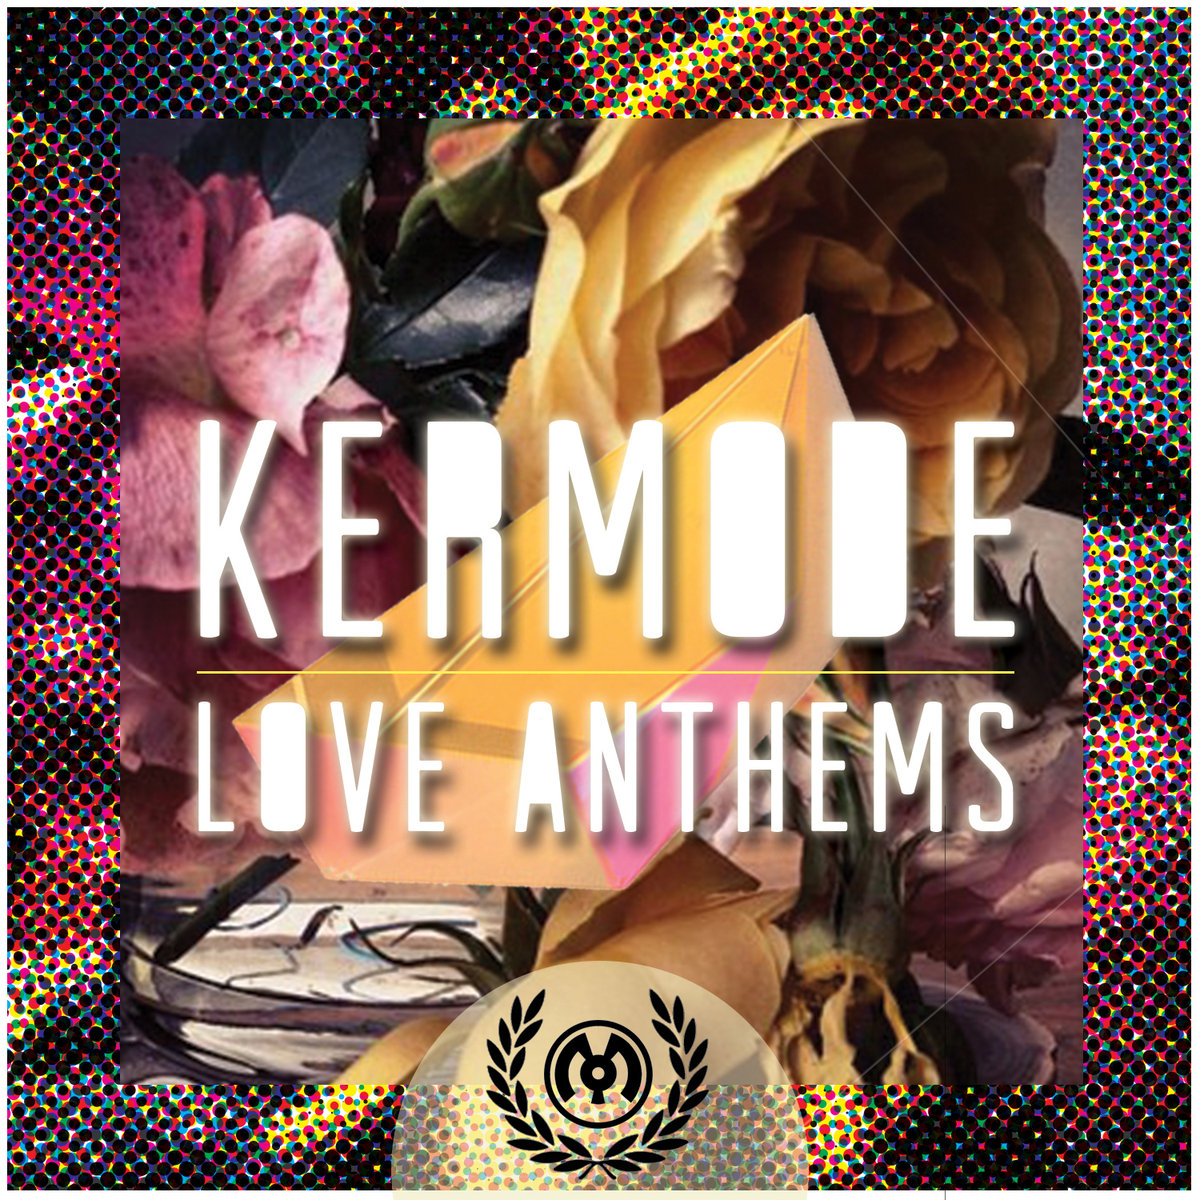 Kermode - Sea To Sky @ 'Love Anthems' album (electronic, dubstep)